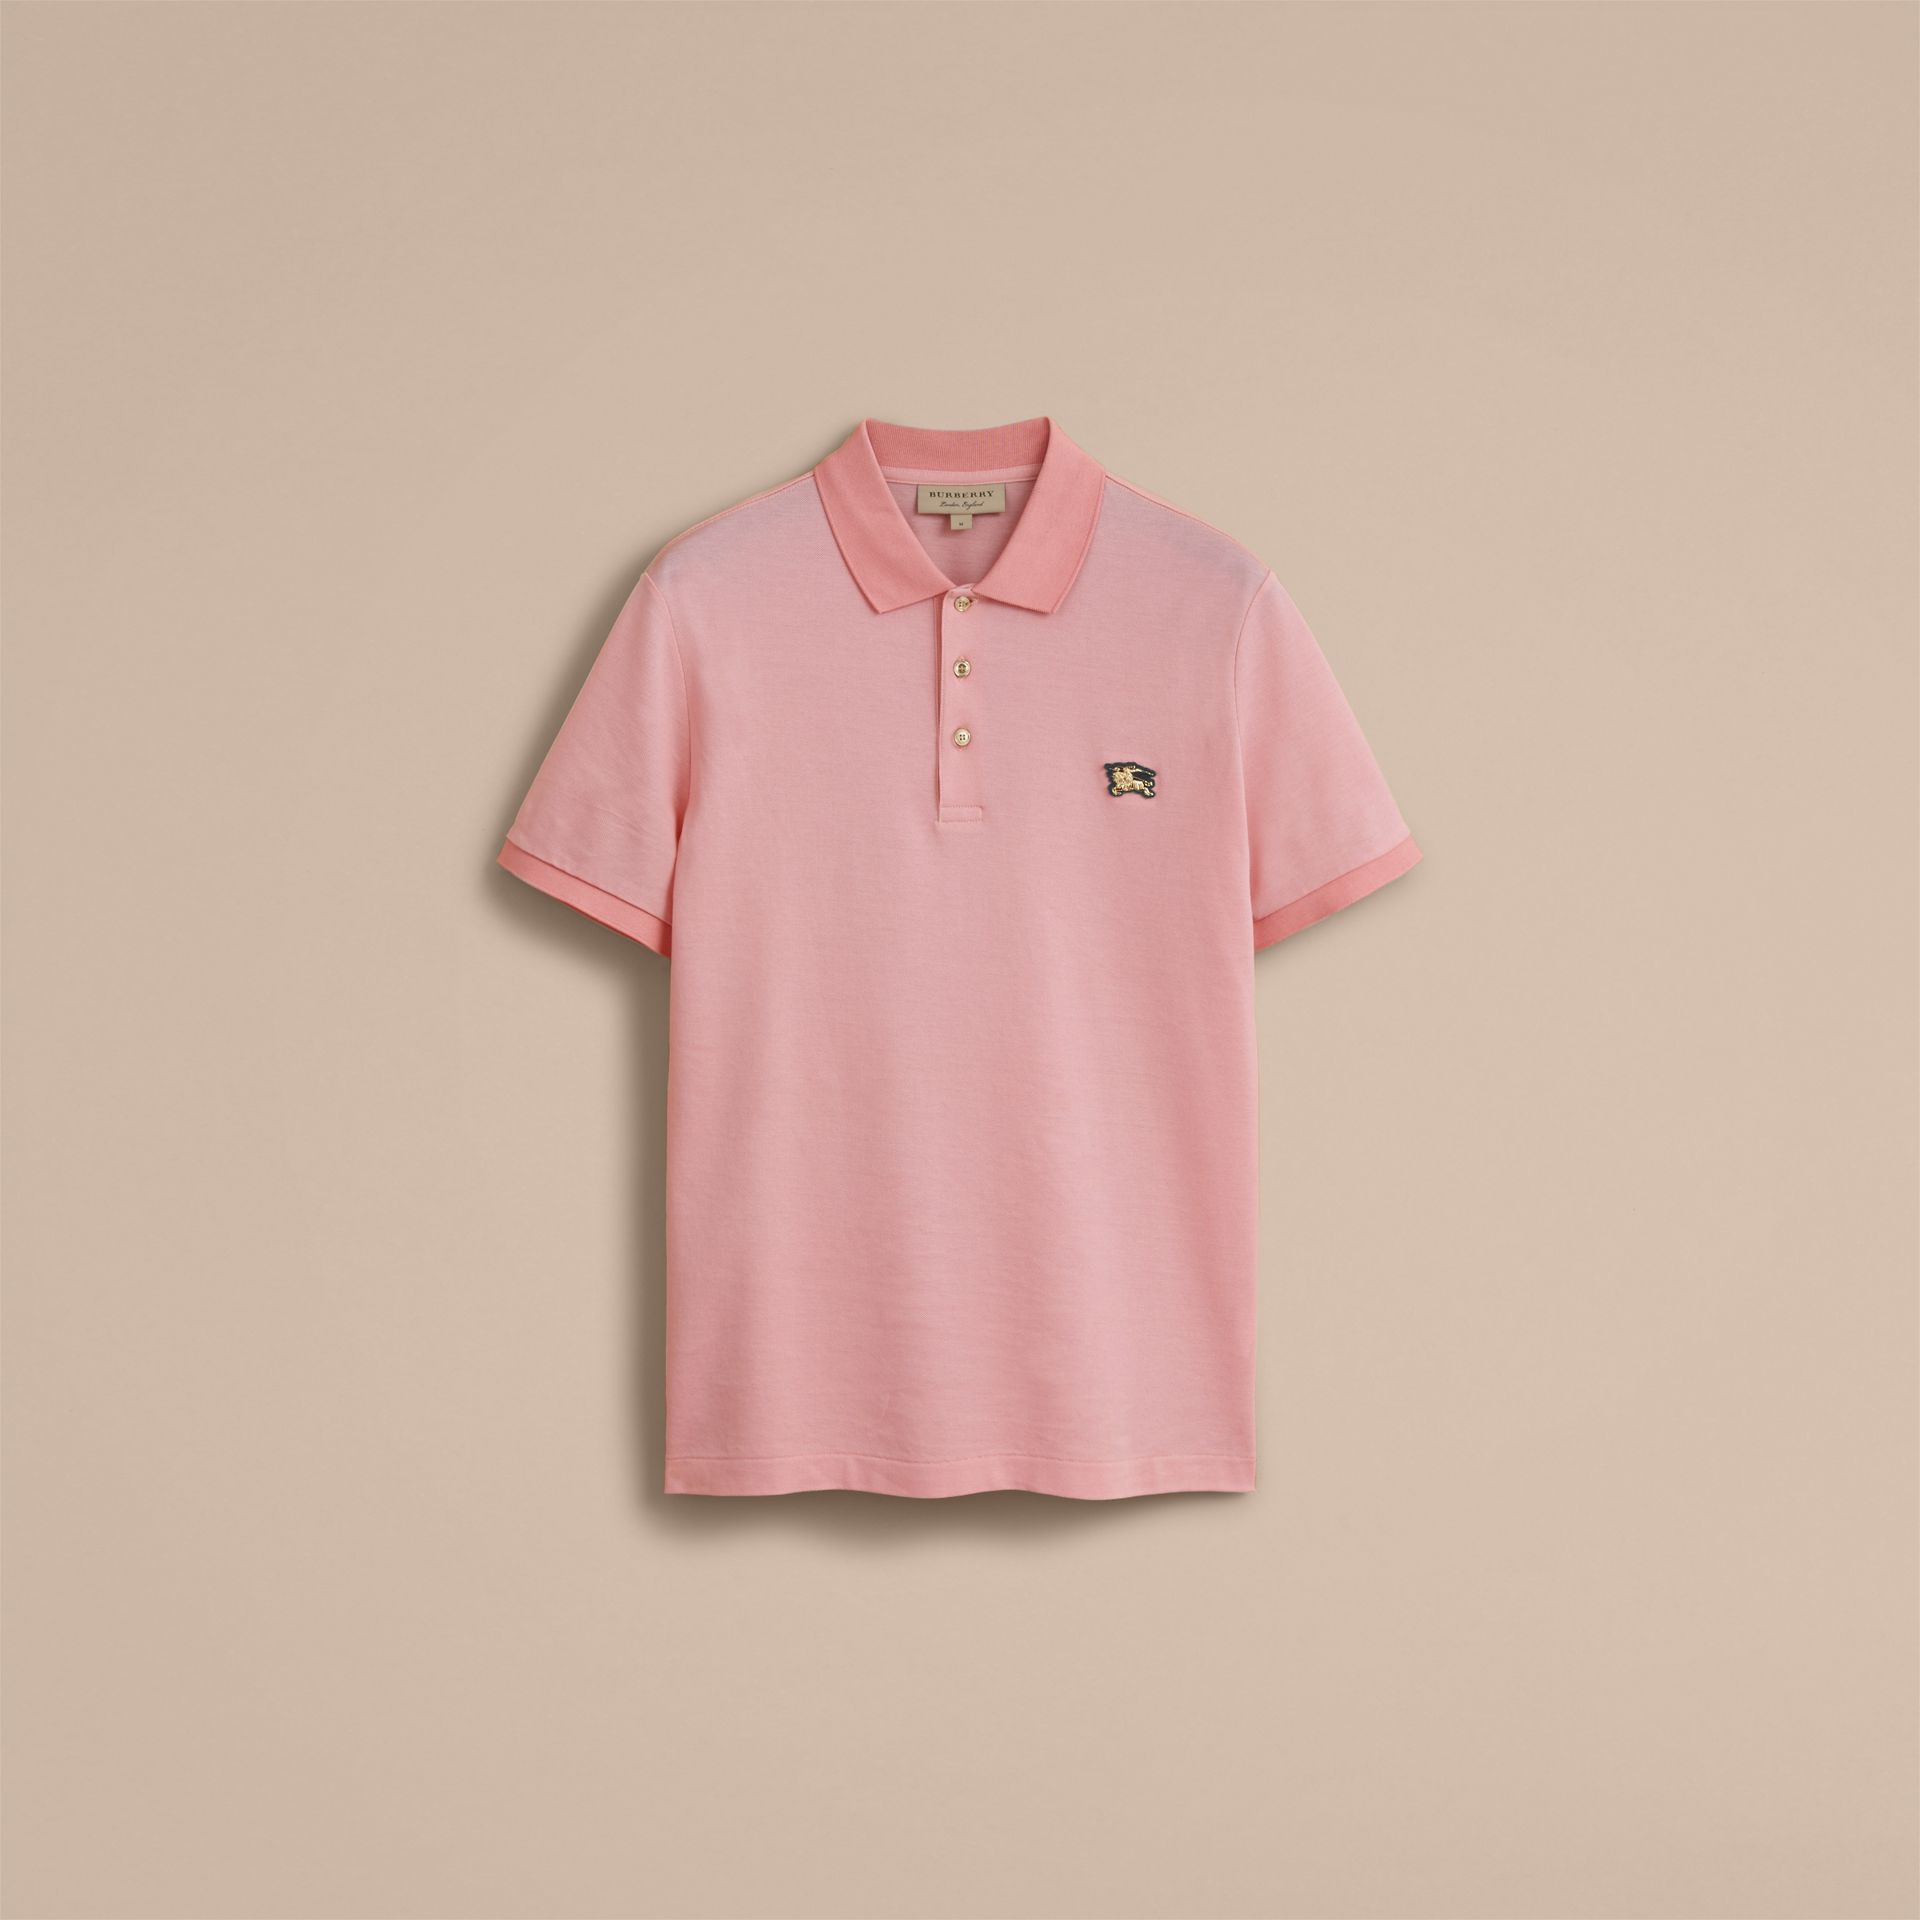 Cotton Piqué Polo Shirt in Chalk Pink - Men | Burberry - gallery image 4